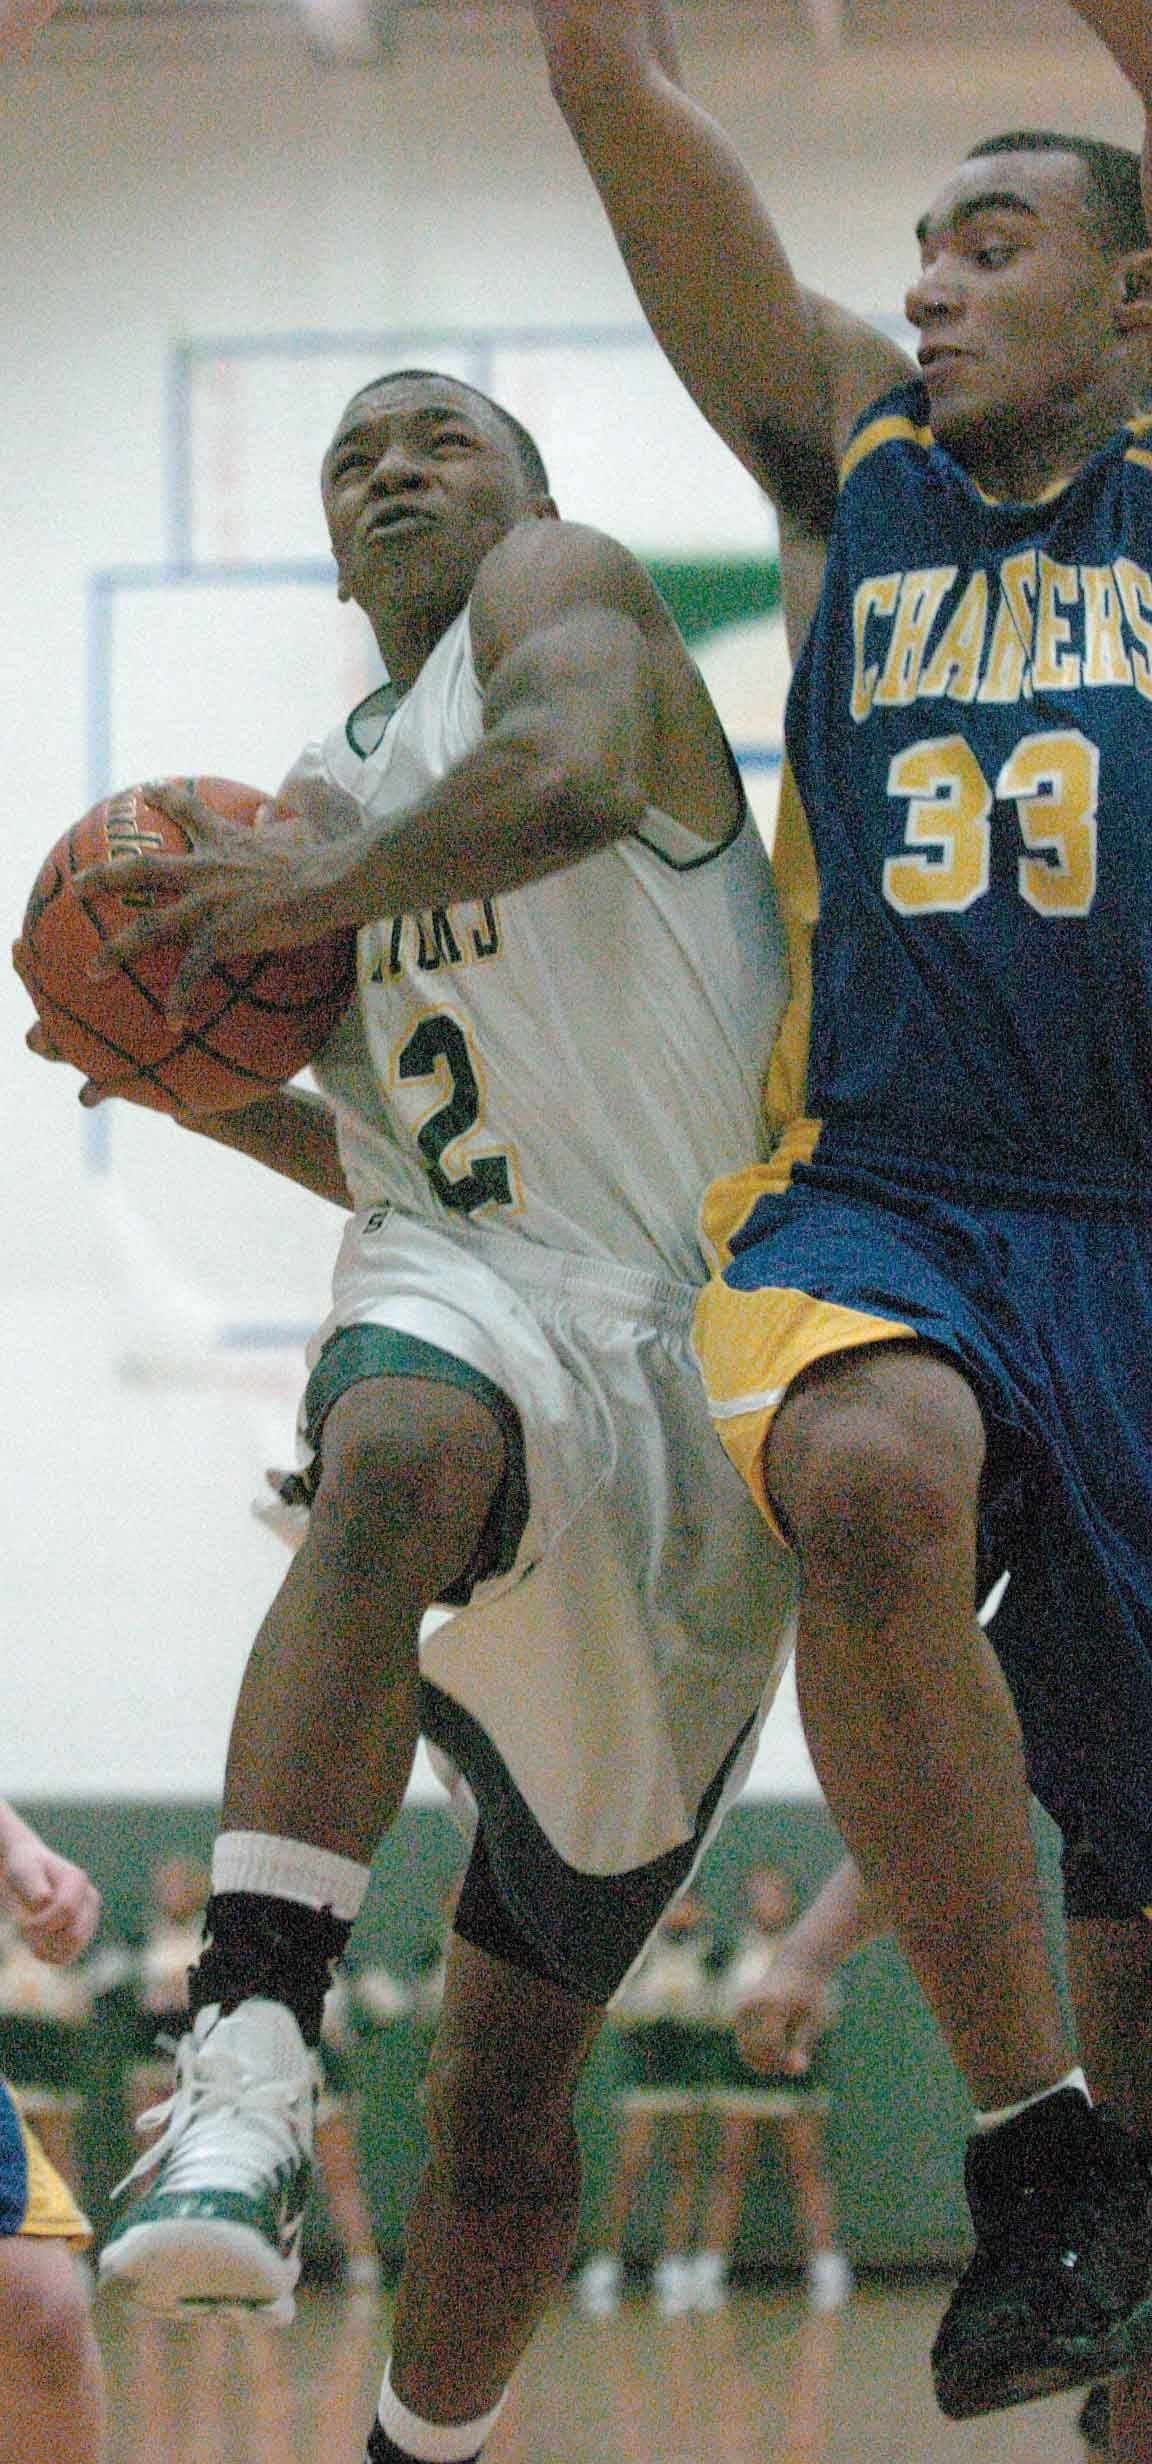 Jakobi Johnson of Waubonsie goes up for a shot around Robert DeMyers of Aurora Central.